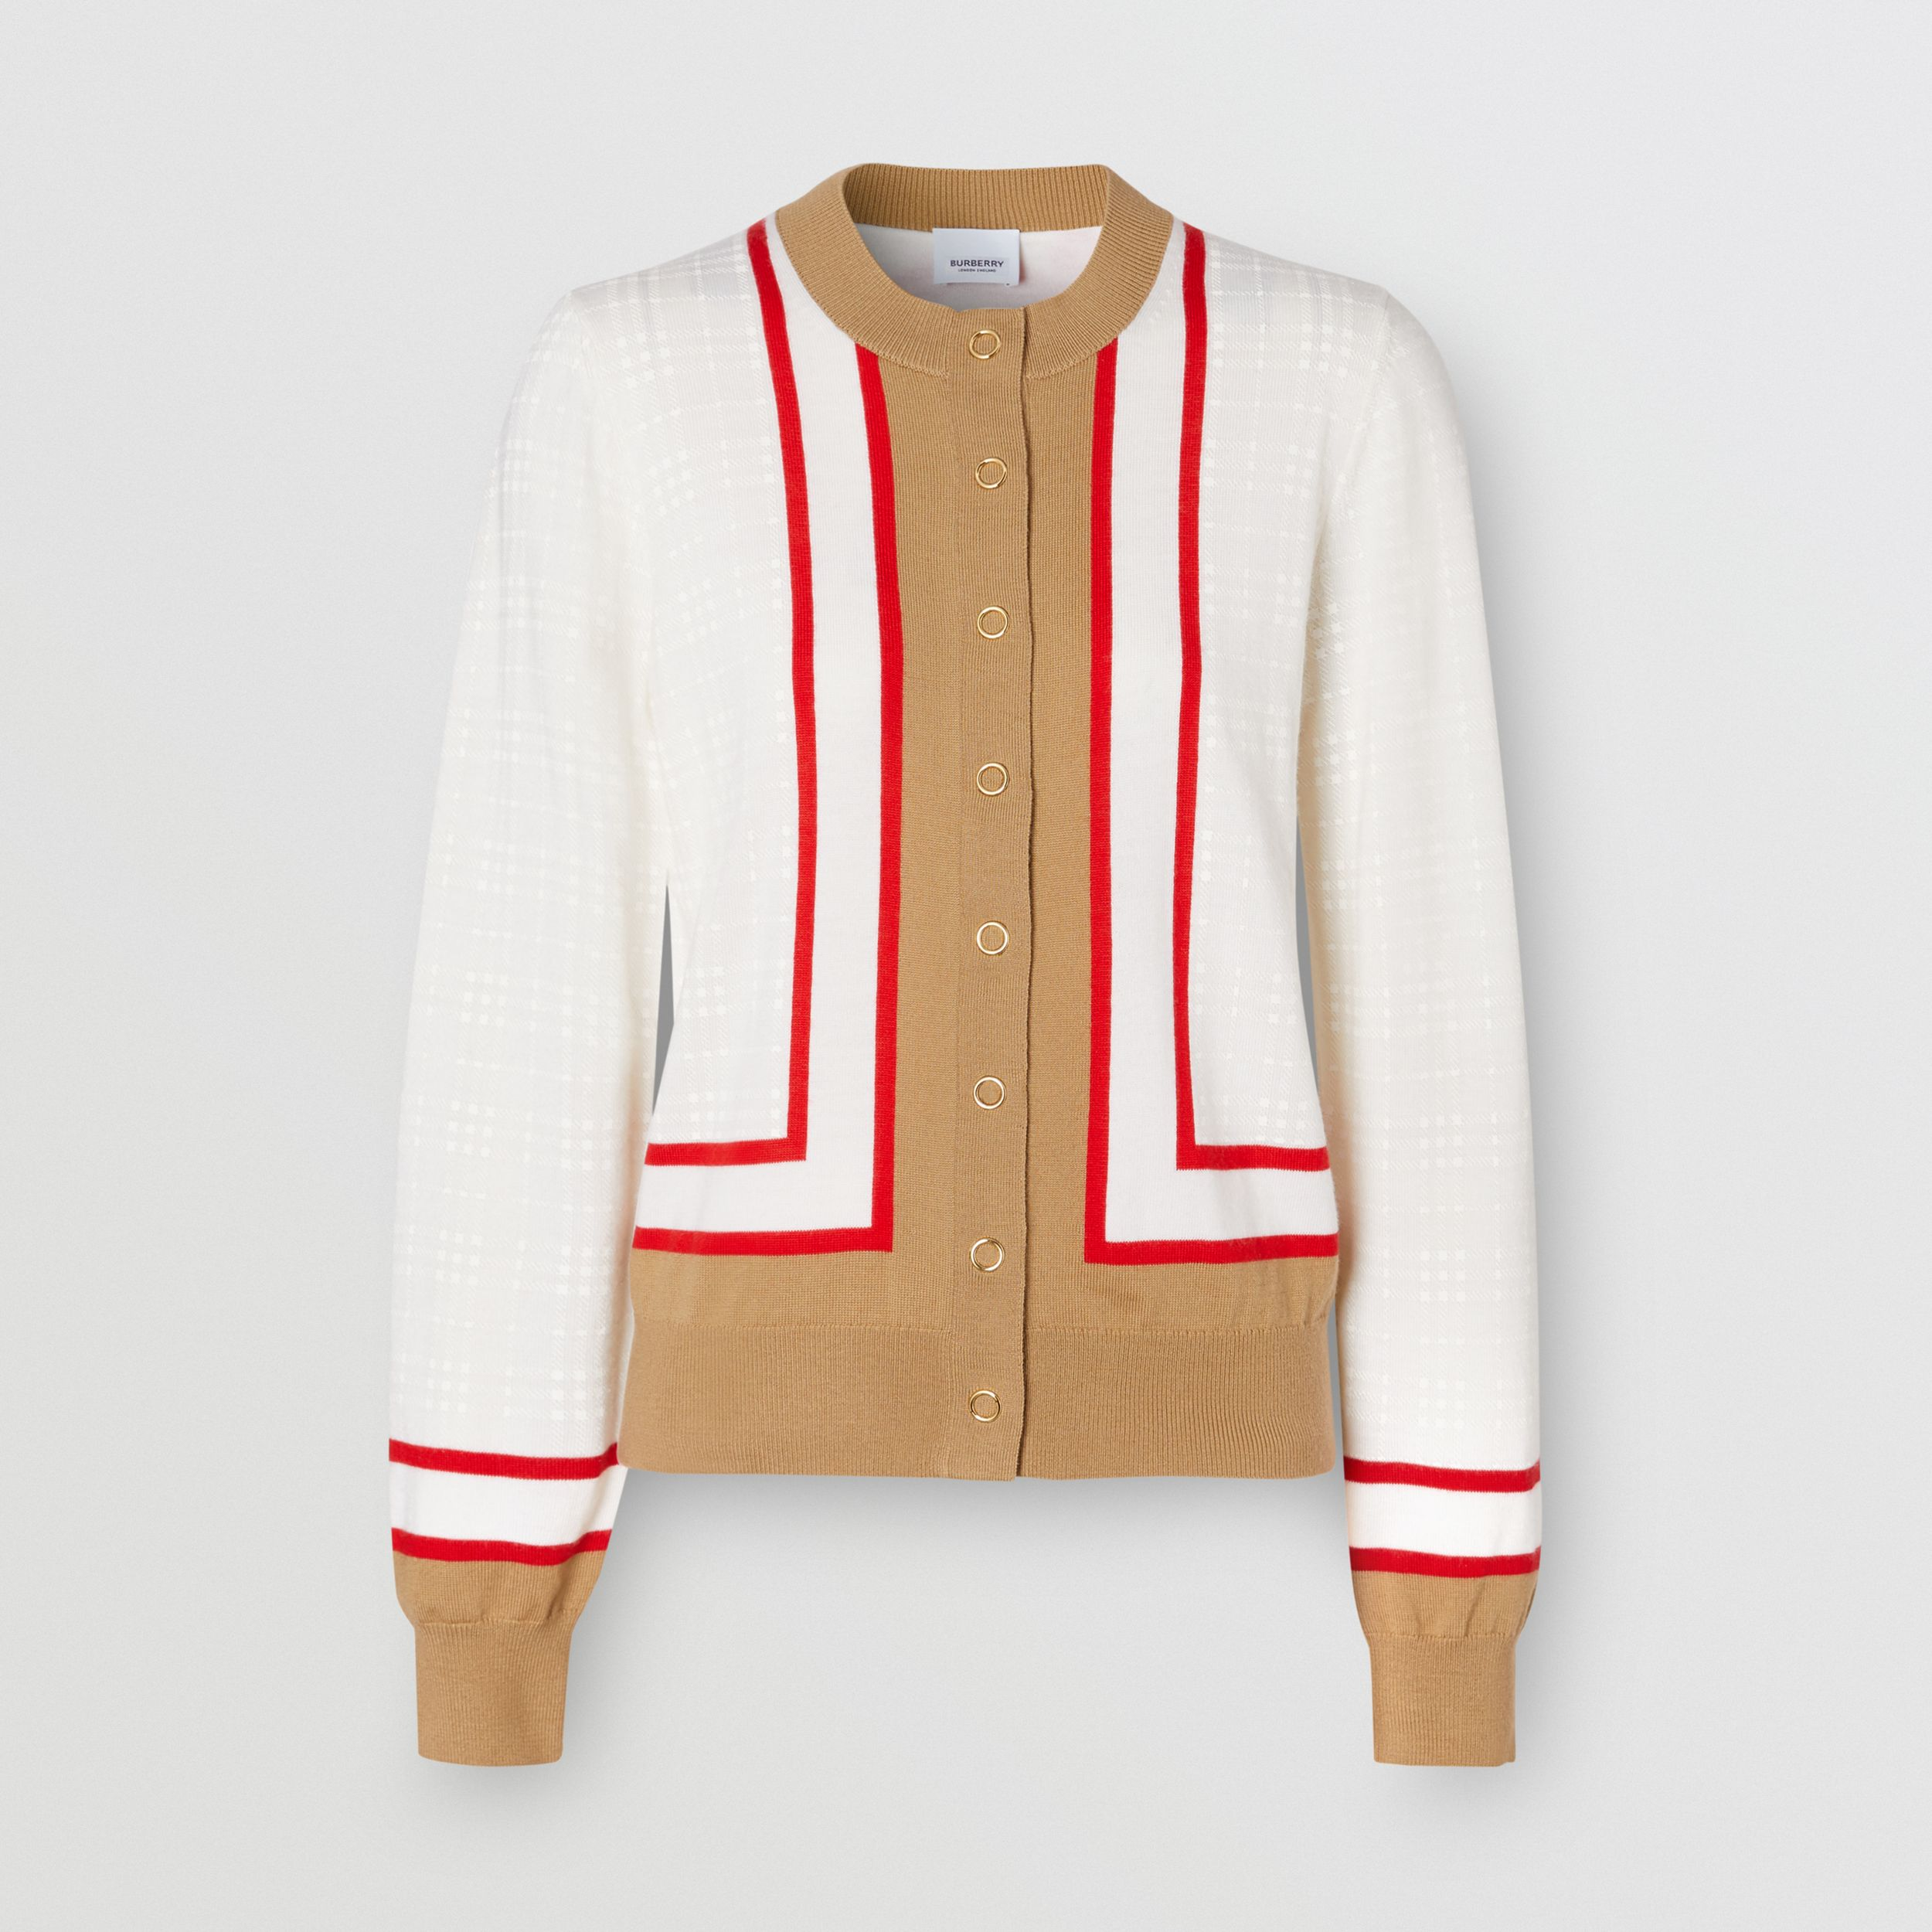 Archive Society Intarsia Wool Cardigan in White - Women | Burberry - 4